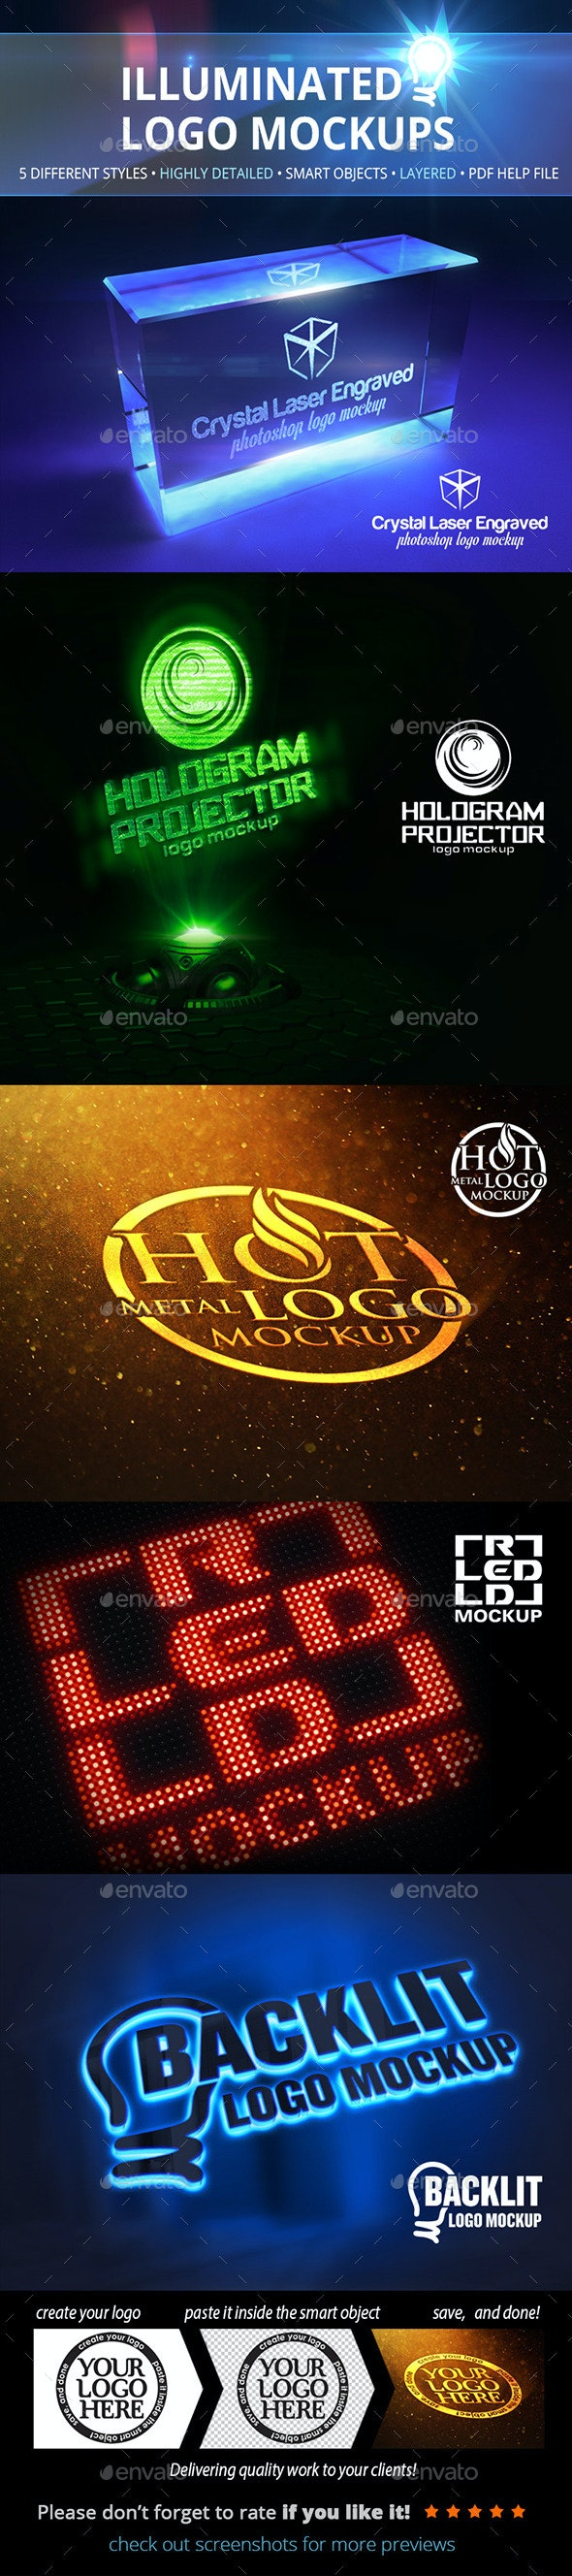 Illuminated Logo Mockups - Logo Product Mock-Ups